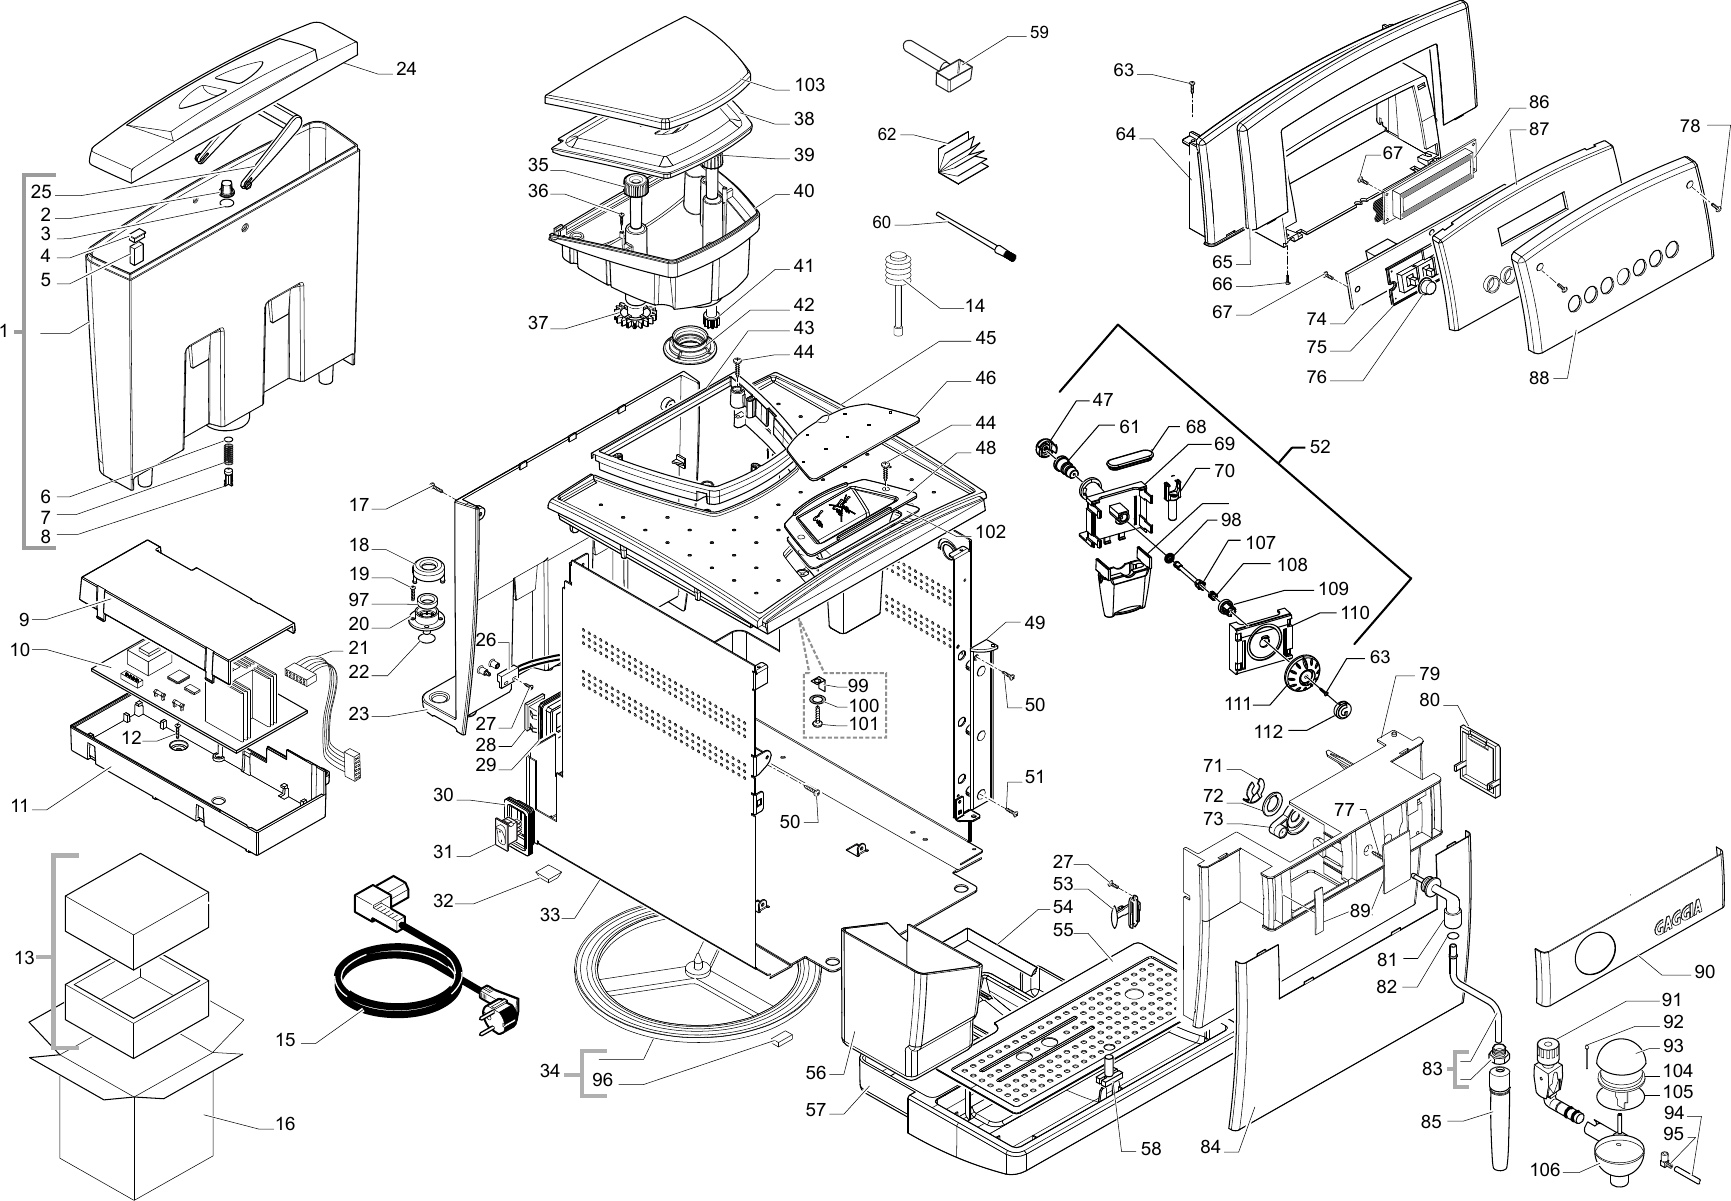 Gaggia Titanium Parts Diagram Sup027ydr E74075 01 Rev04